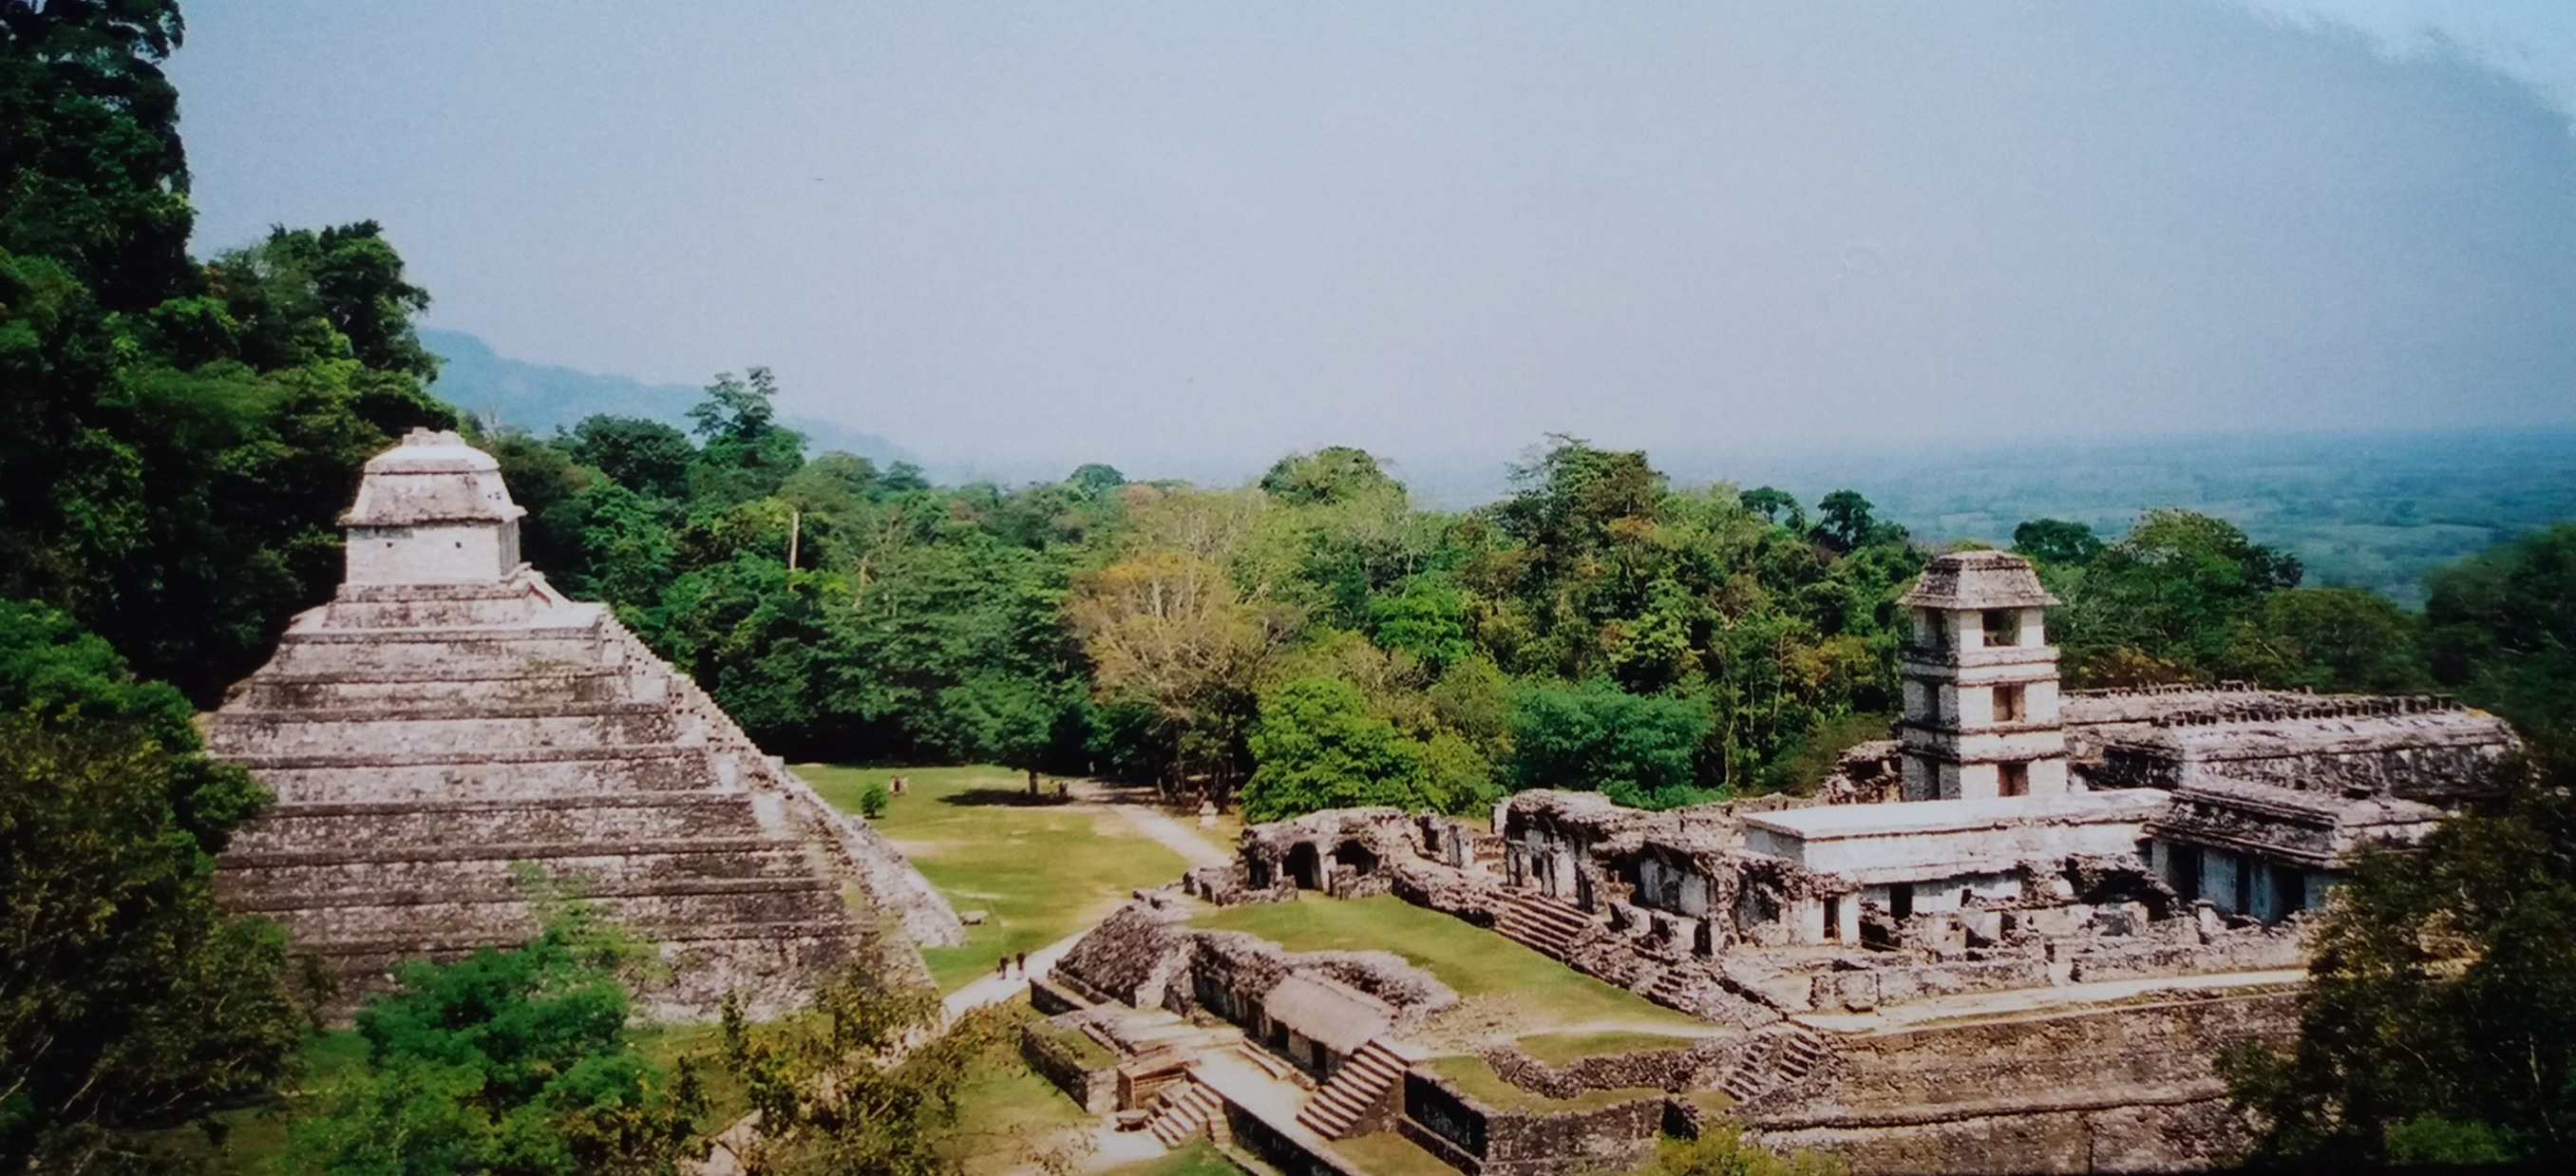 Mexico diary - Day 13 - Palenque